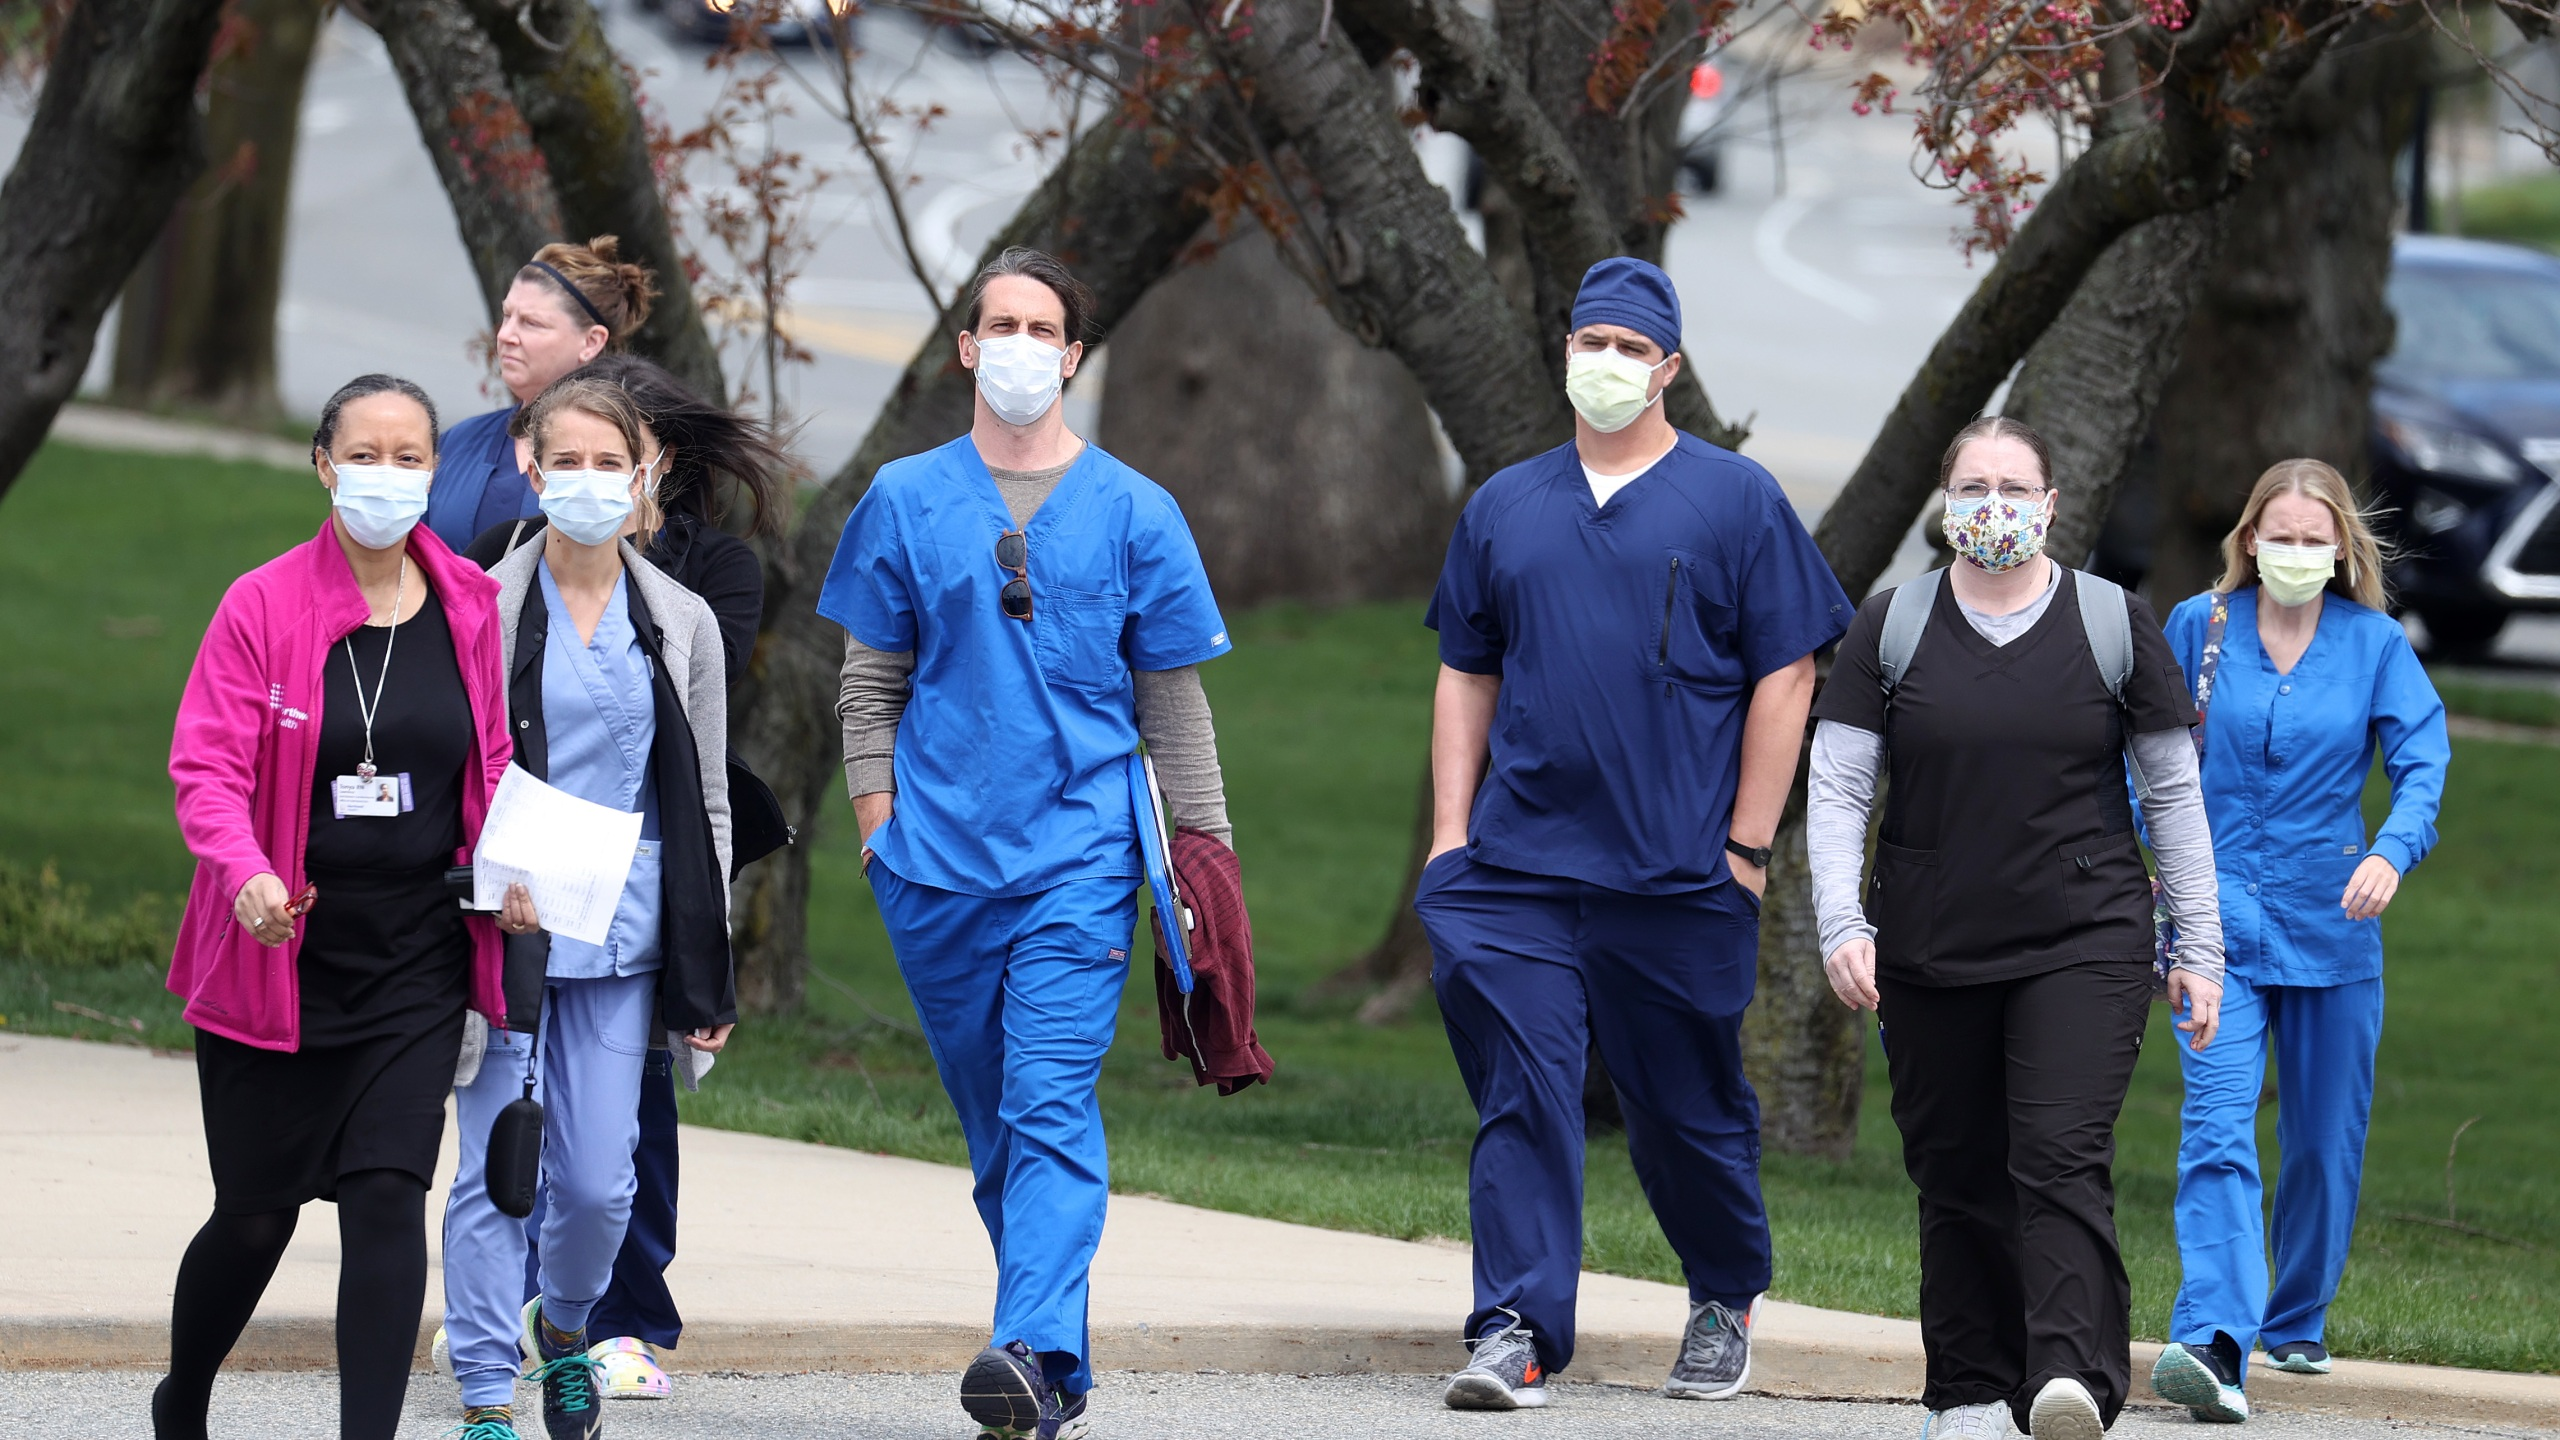 Nurses arriving from around the country to help treat coronavirus (COVID-19) patients arrive and will be met by staff Nurses and administrators welcoming them with a clap in at the Long Island Nursing Institute on April 14, 2020 in New Hyde Park, New York. (Al Bello/Getty Images)